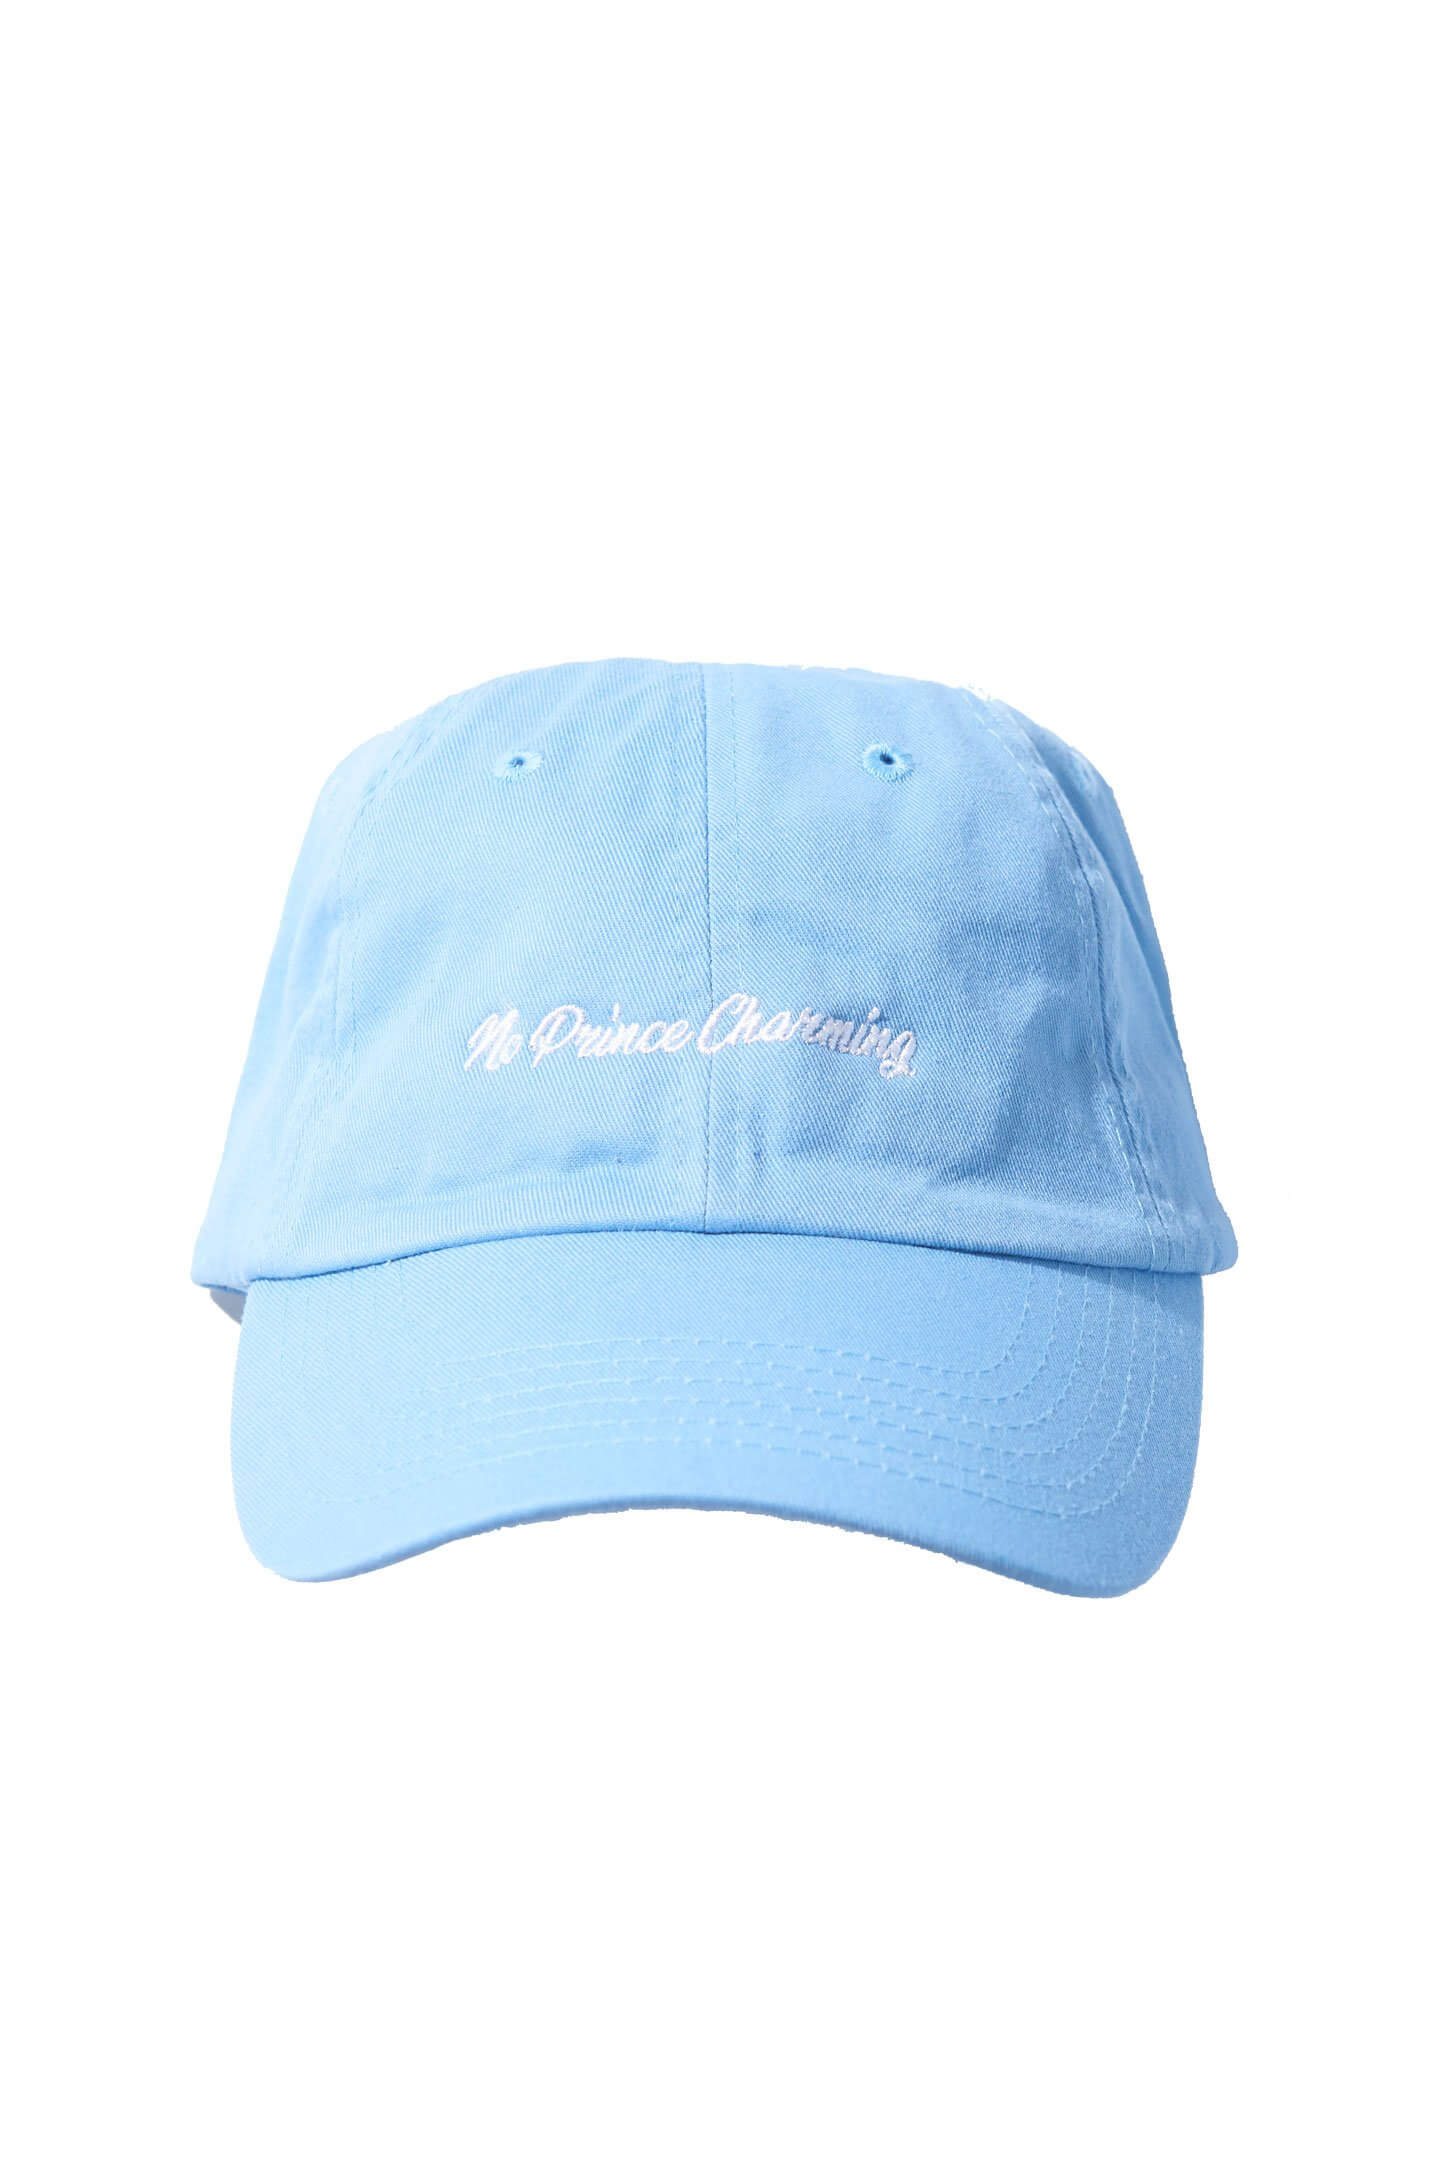 "NO PRINCE CHARMING ""DAD CAP"" - SKY BLUE"